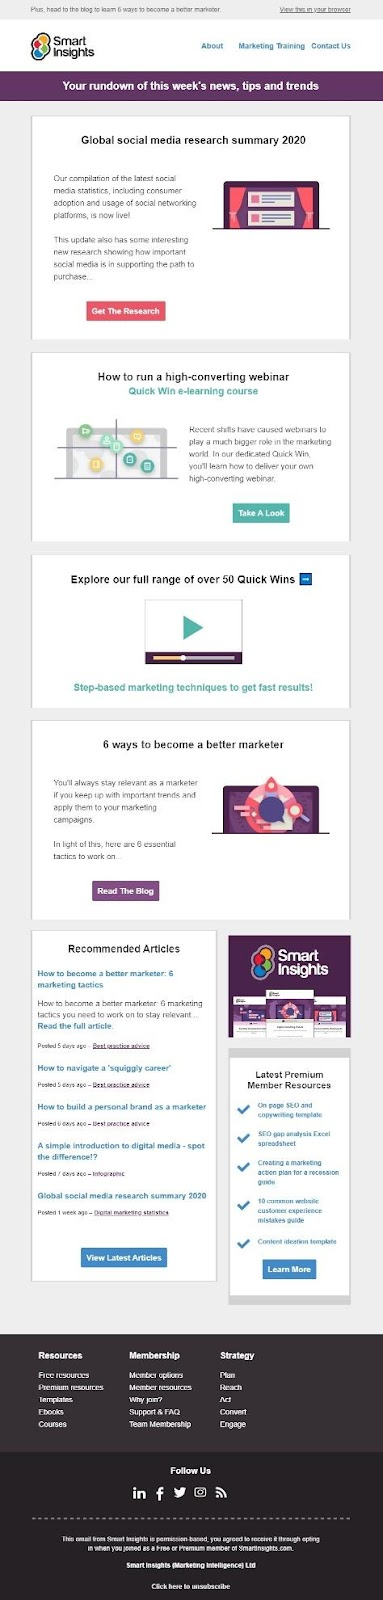 Smart Insights newsletter example